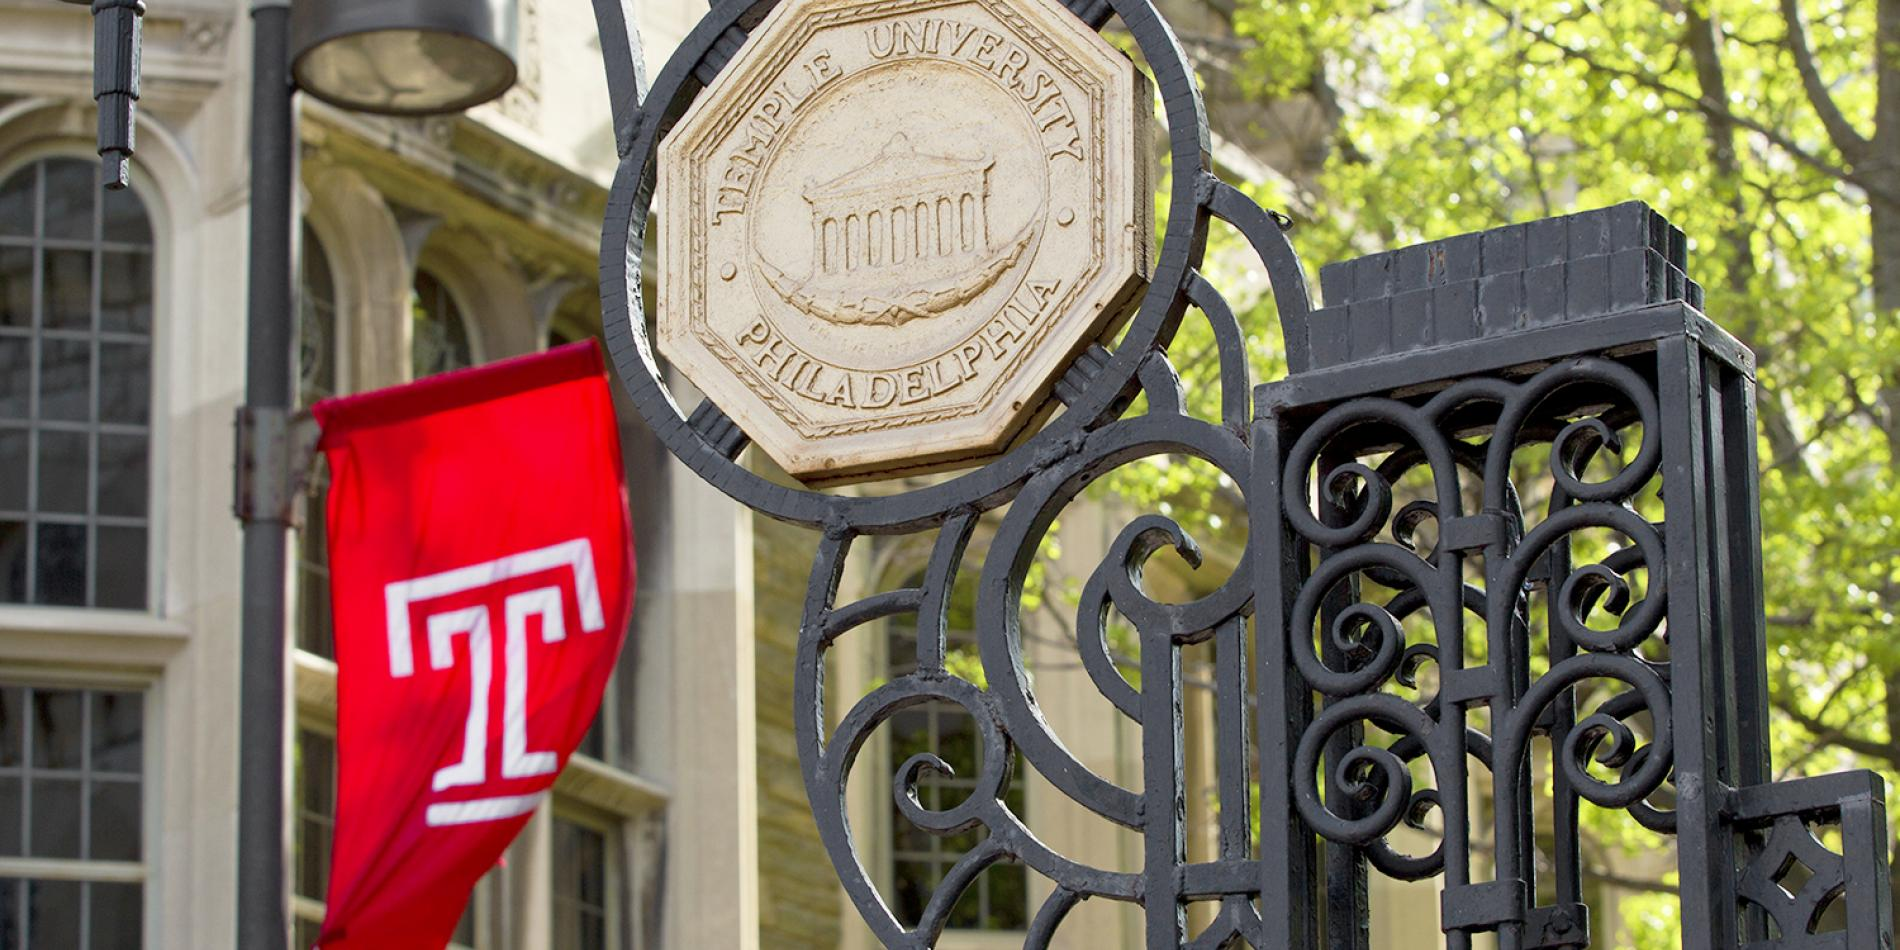 Temple University seal on the entrance gate to Polett Walk.